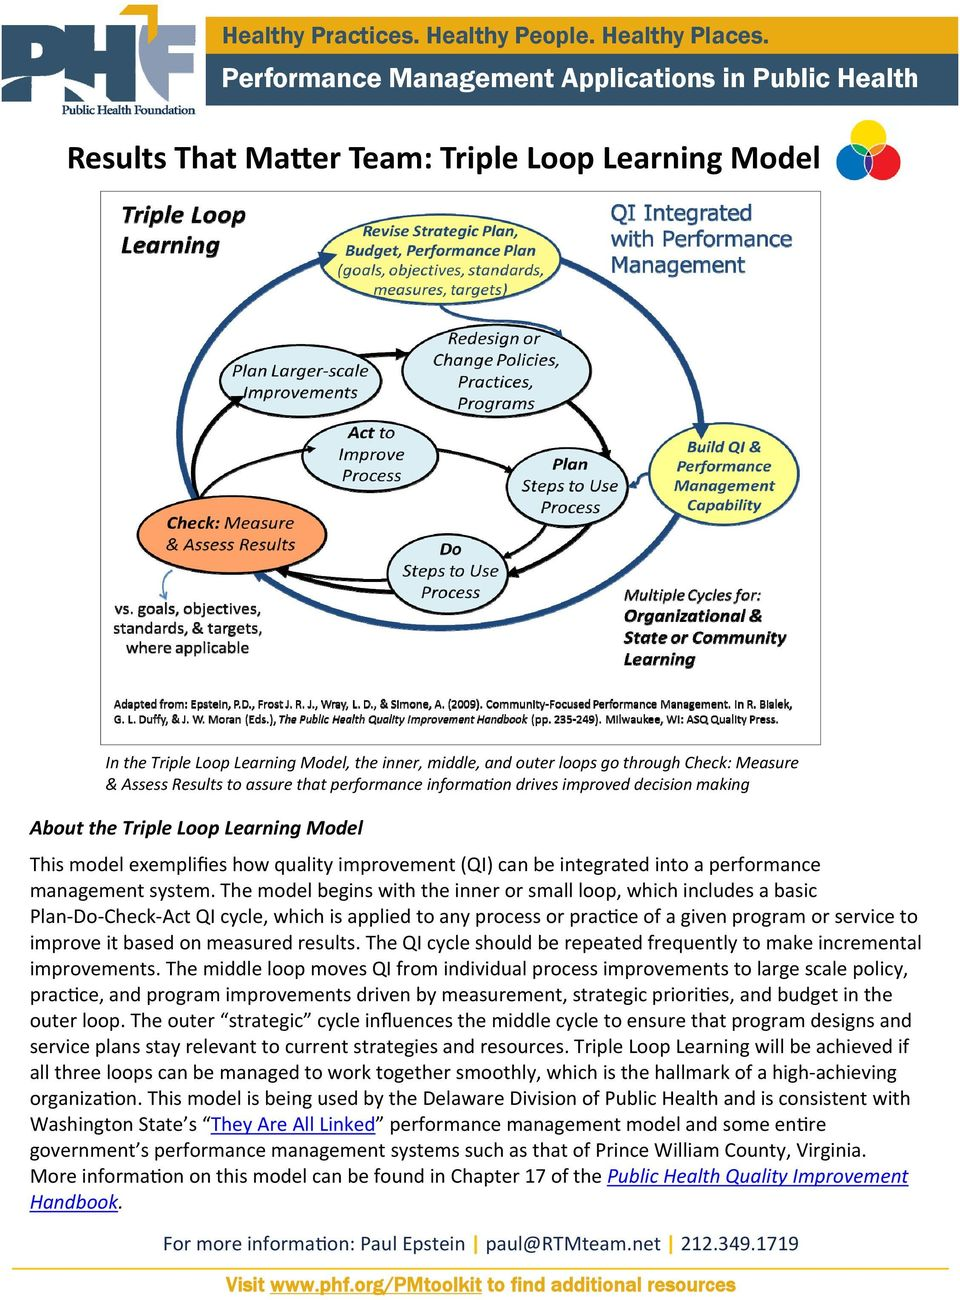 on drives improved decision making About the Triple Loop Learning Model This model exemplifies how quality improvement (QI) can be integrated into a performance management system.